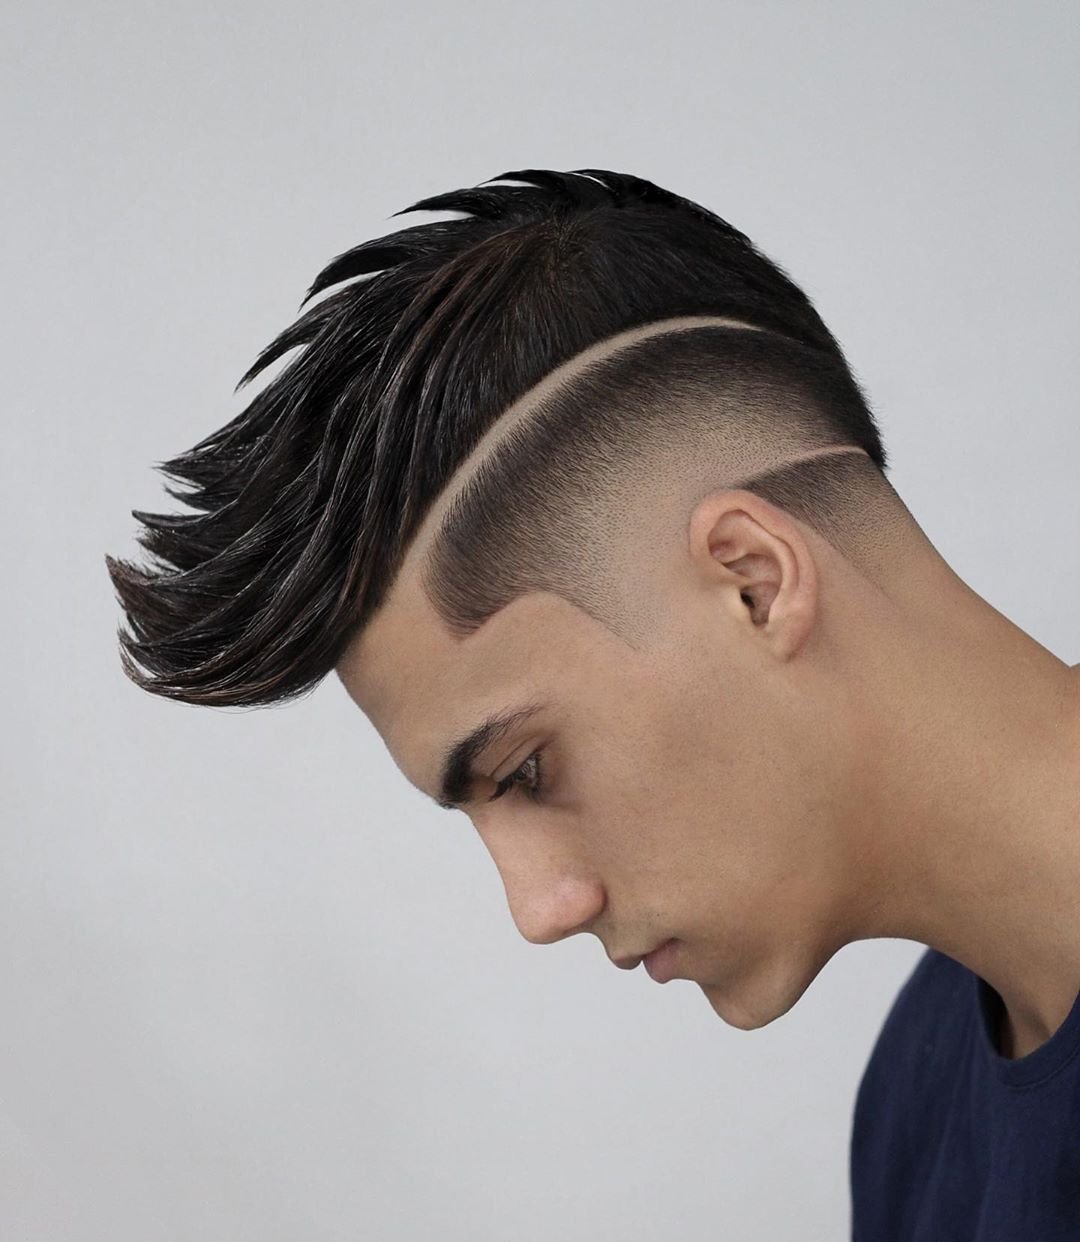 60 Most Creative Haircut Designs With Lines Stylish Haircut Designs Lines For Men Men S Style